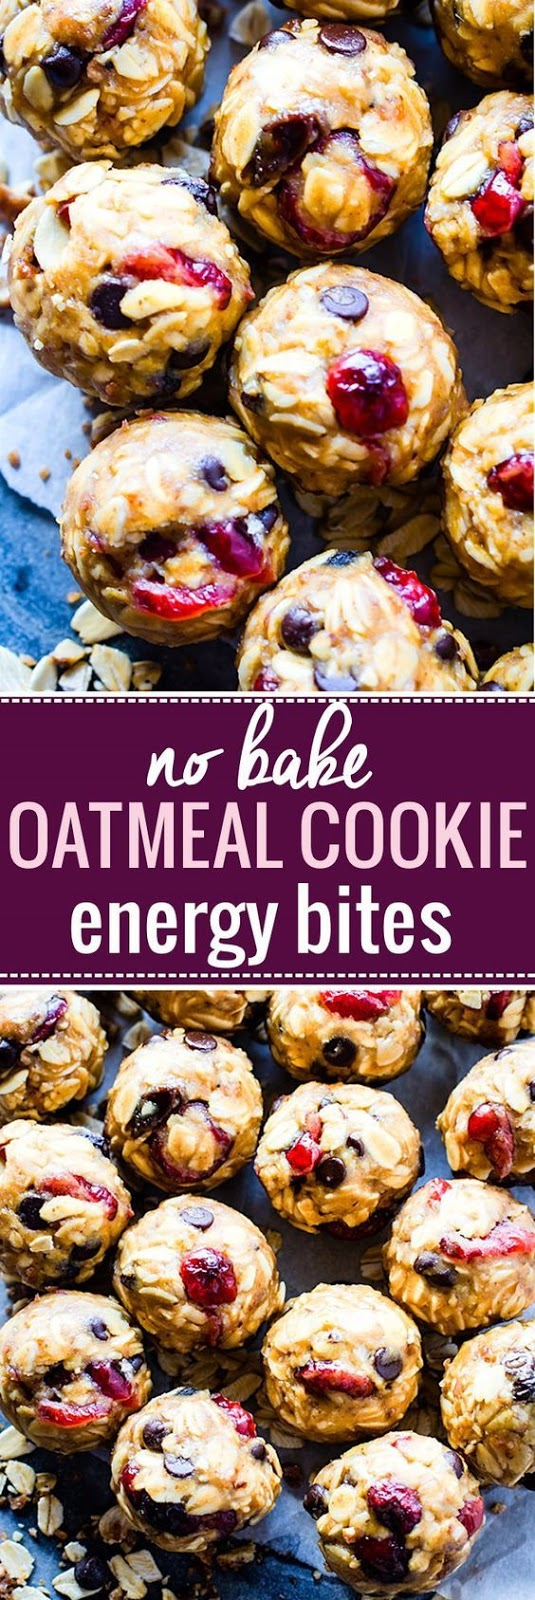 No Bake Loaded Oatmeal Cookie Energy Bites